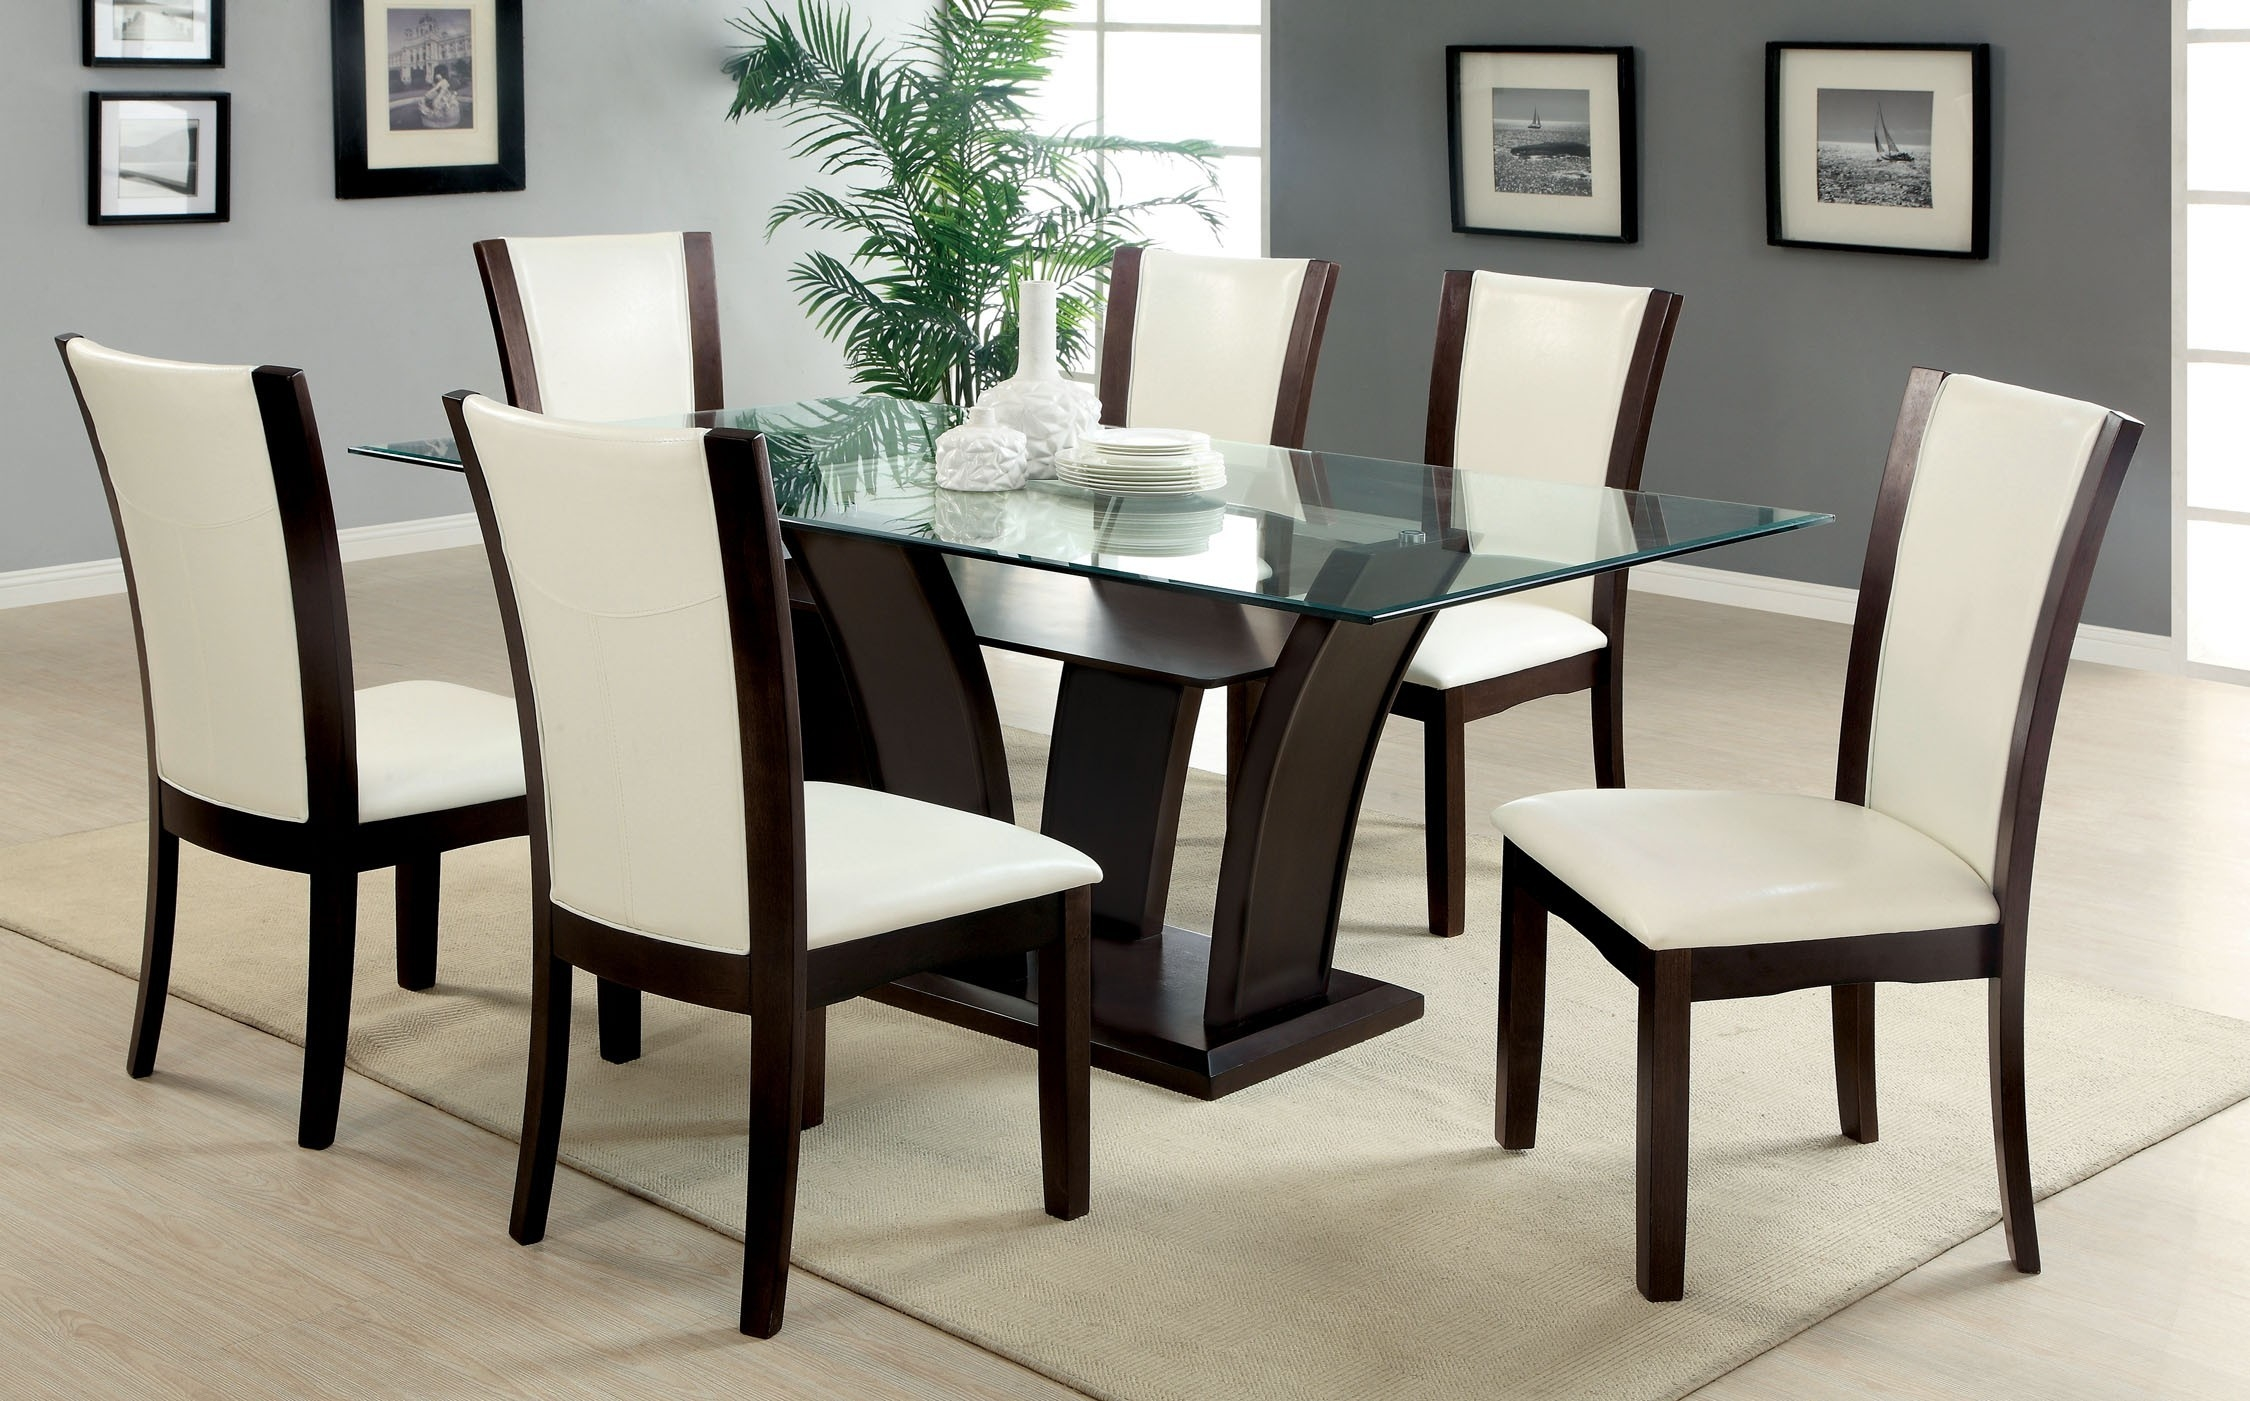 Dazzling Round Dining Table Set For 9 9 Macys Room Chairs Lovely ...